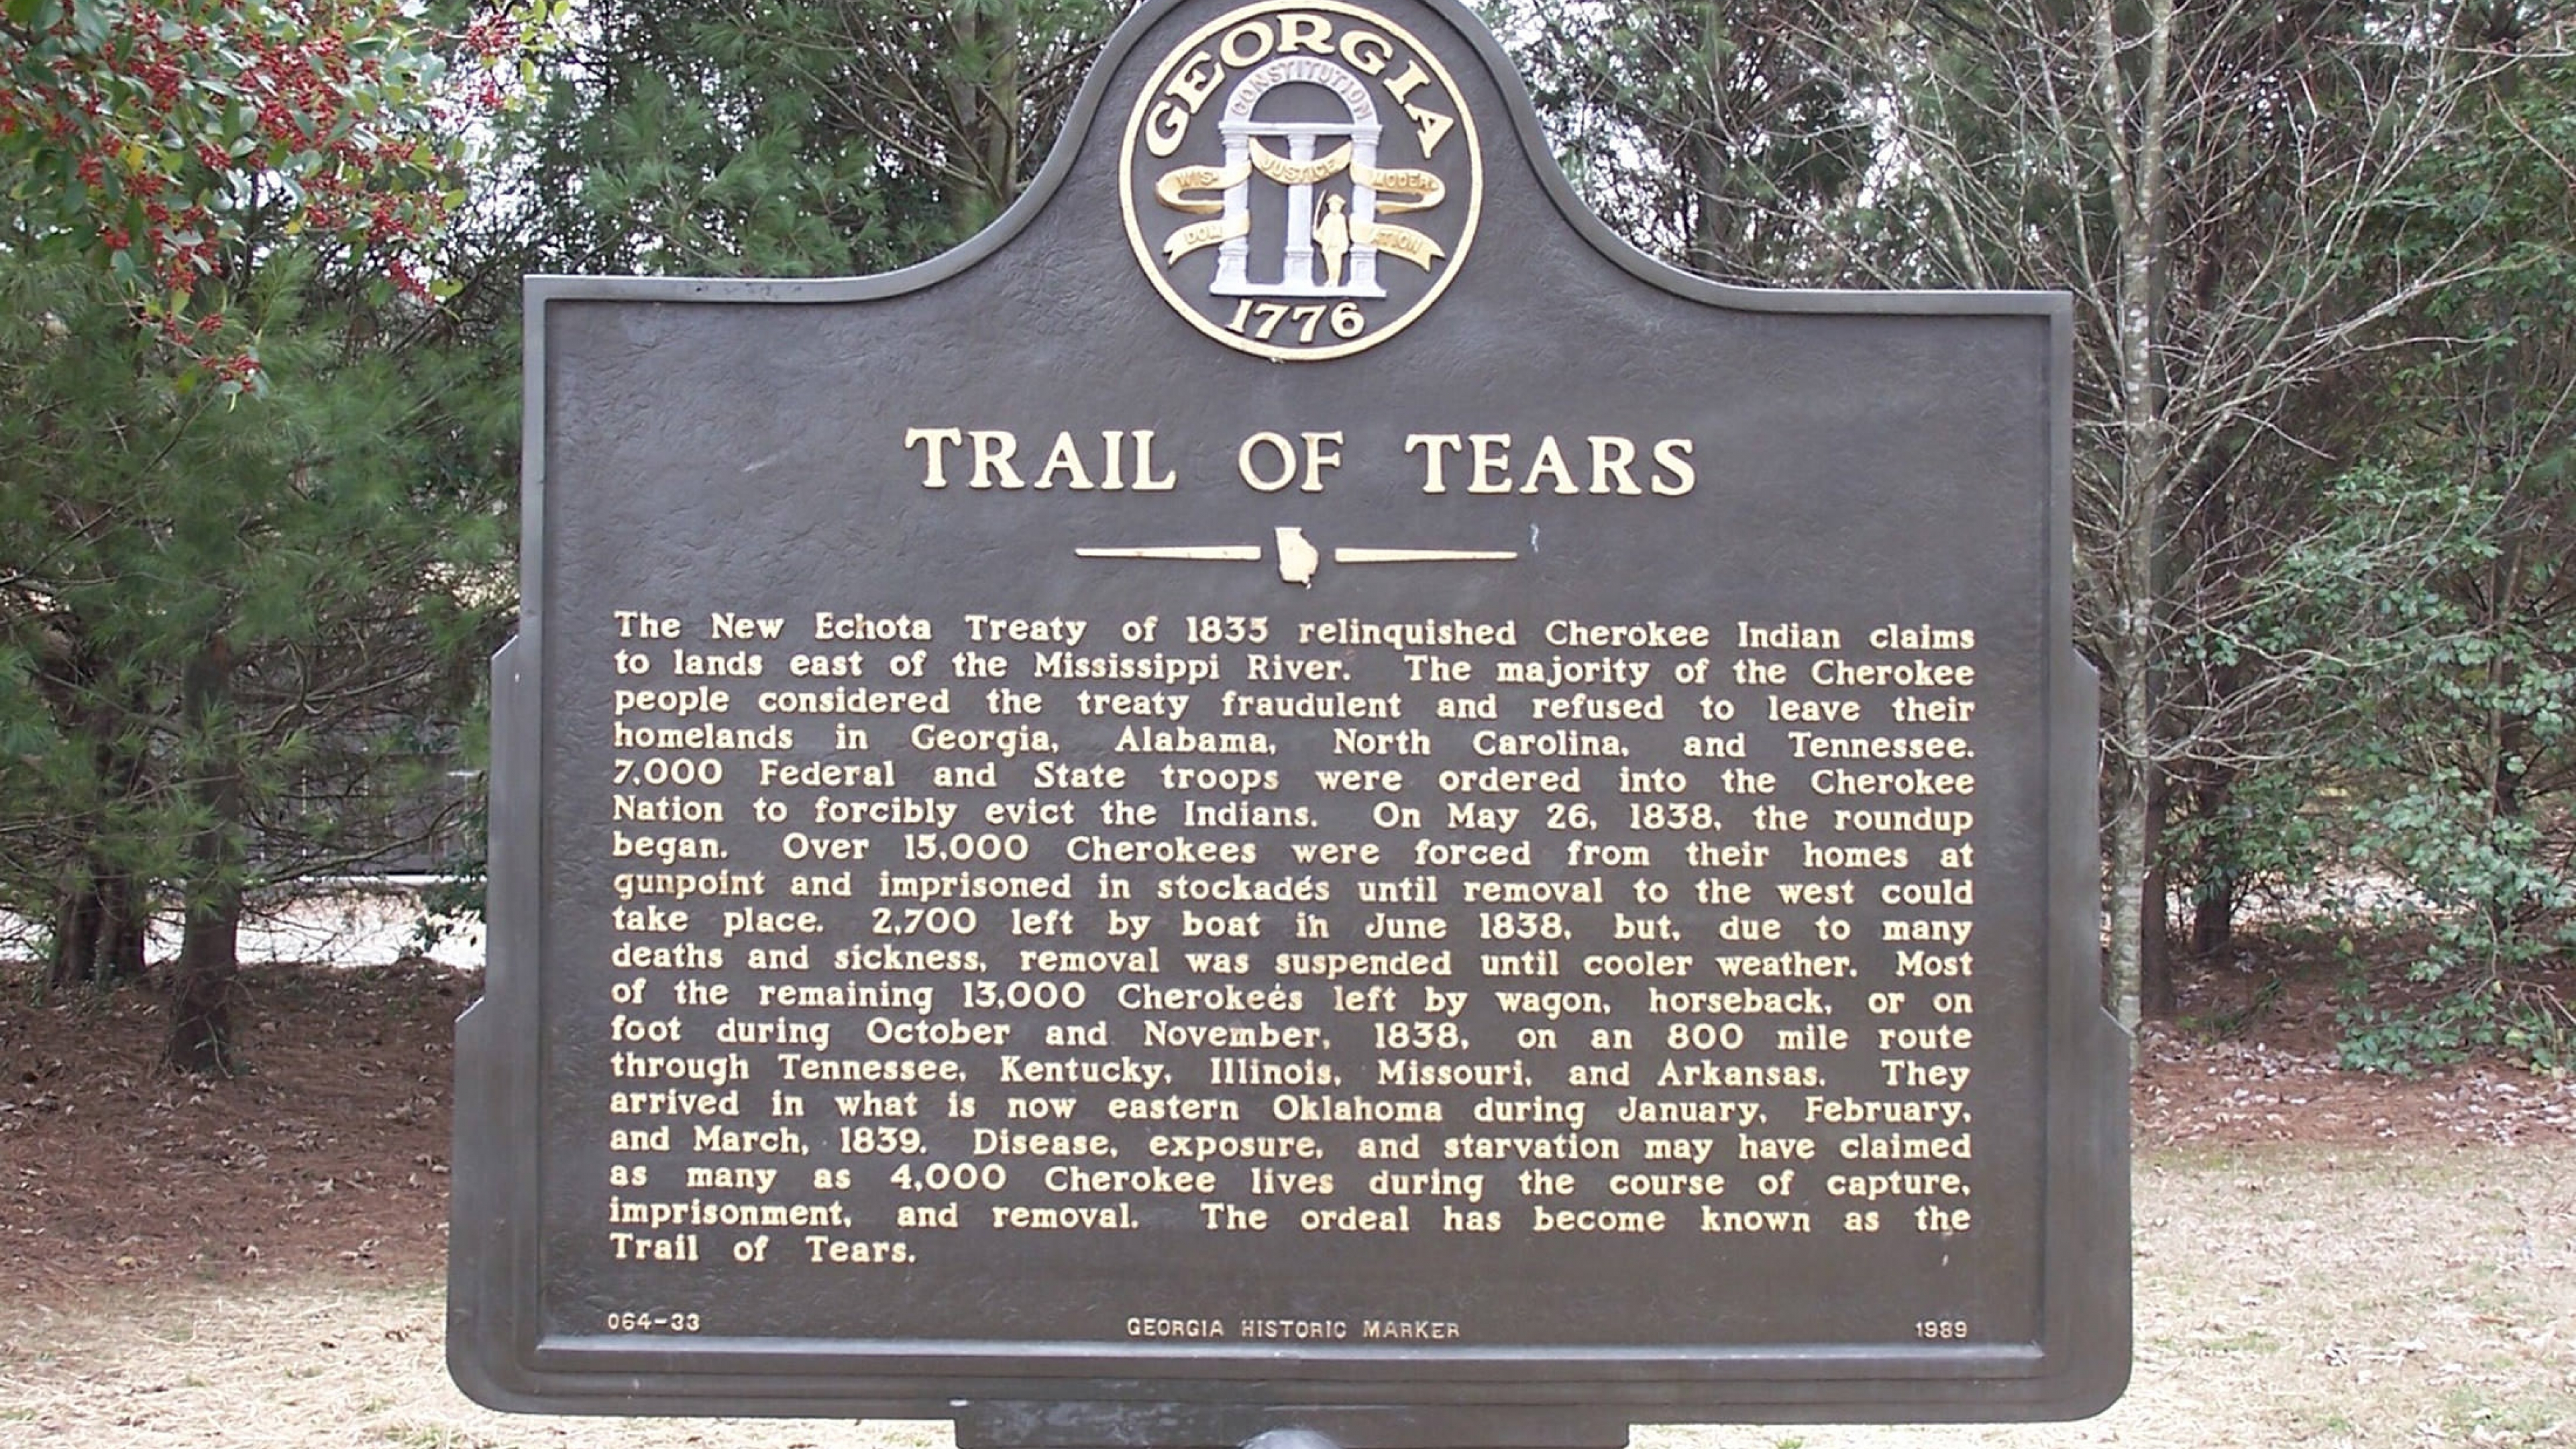 Trail of Tears place marker